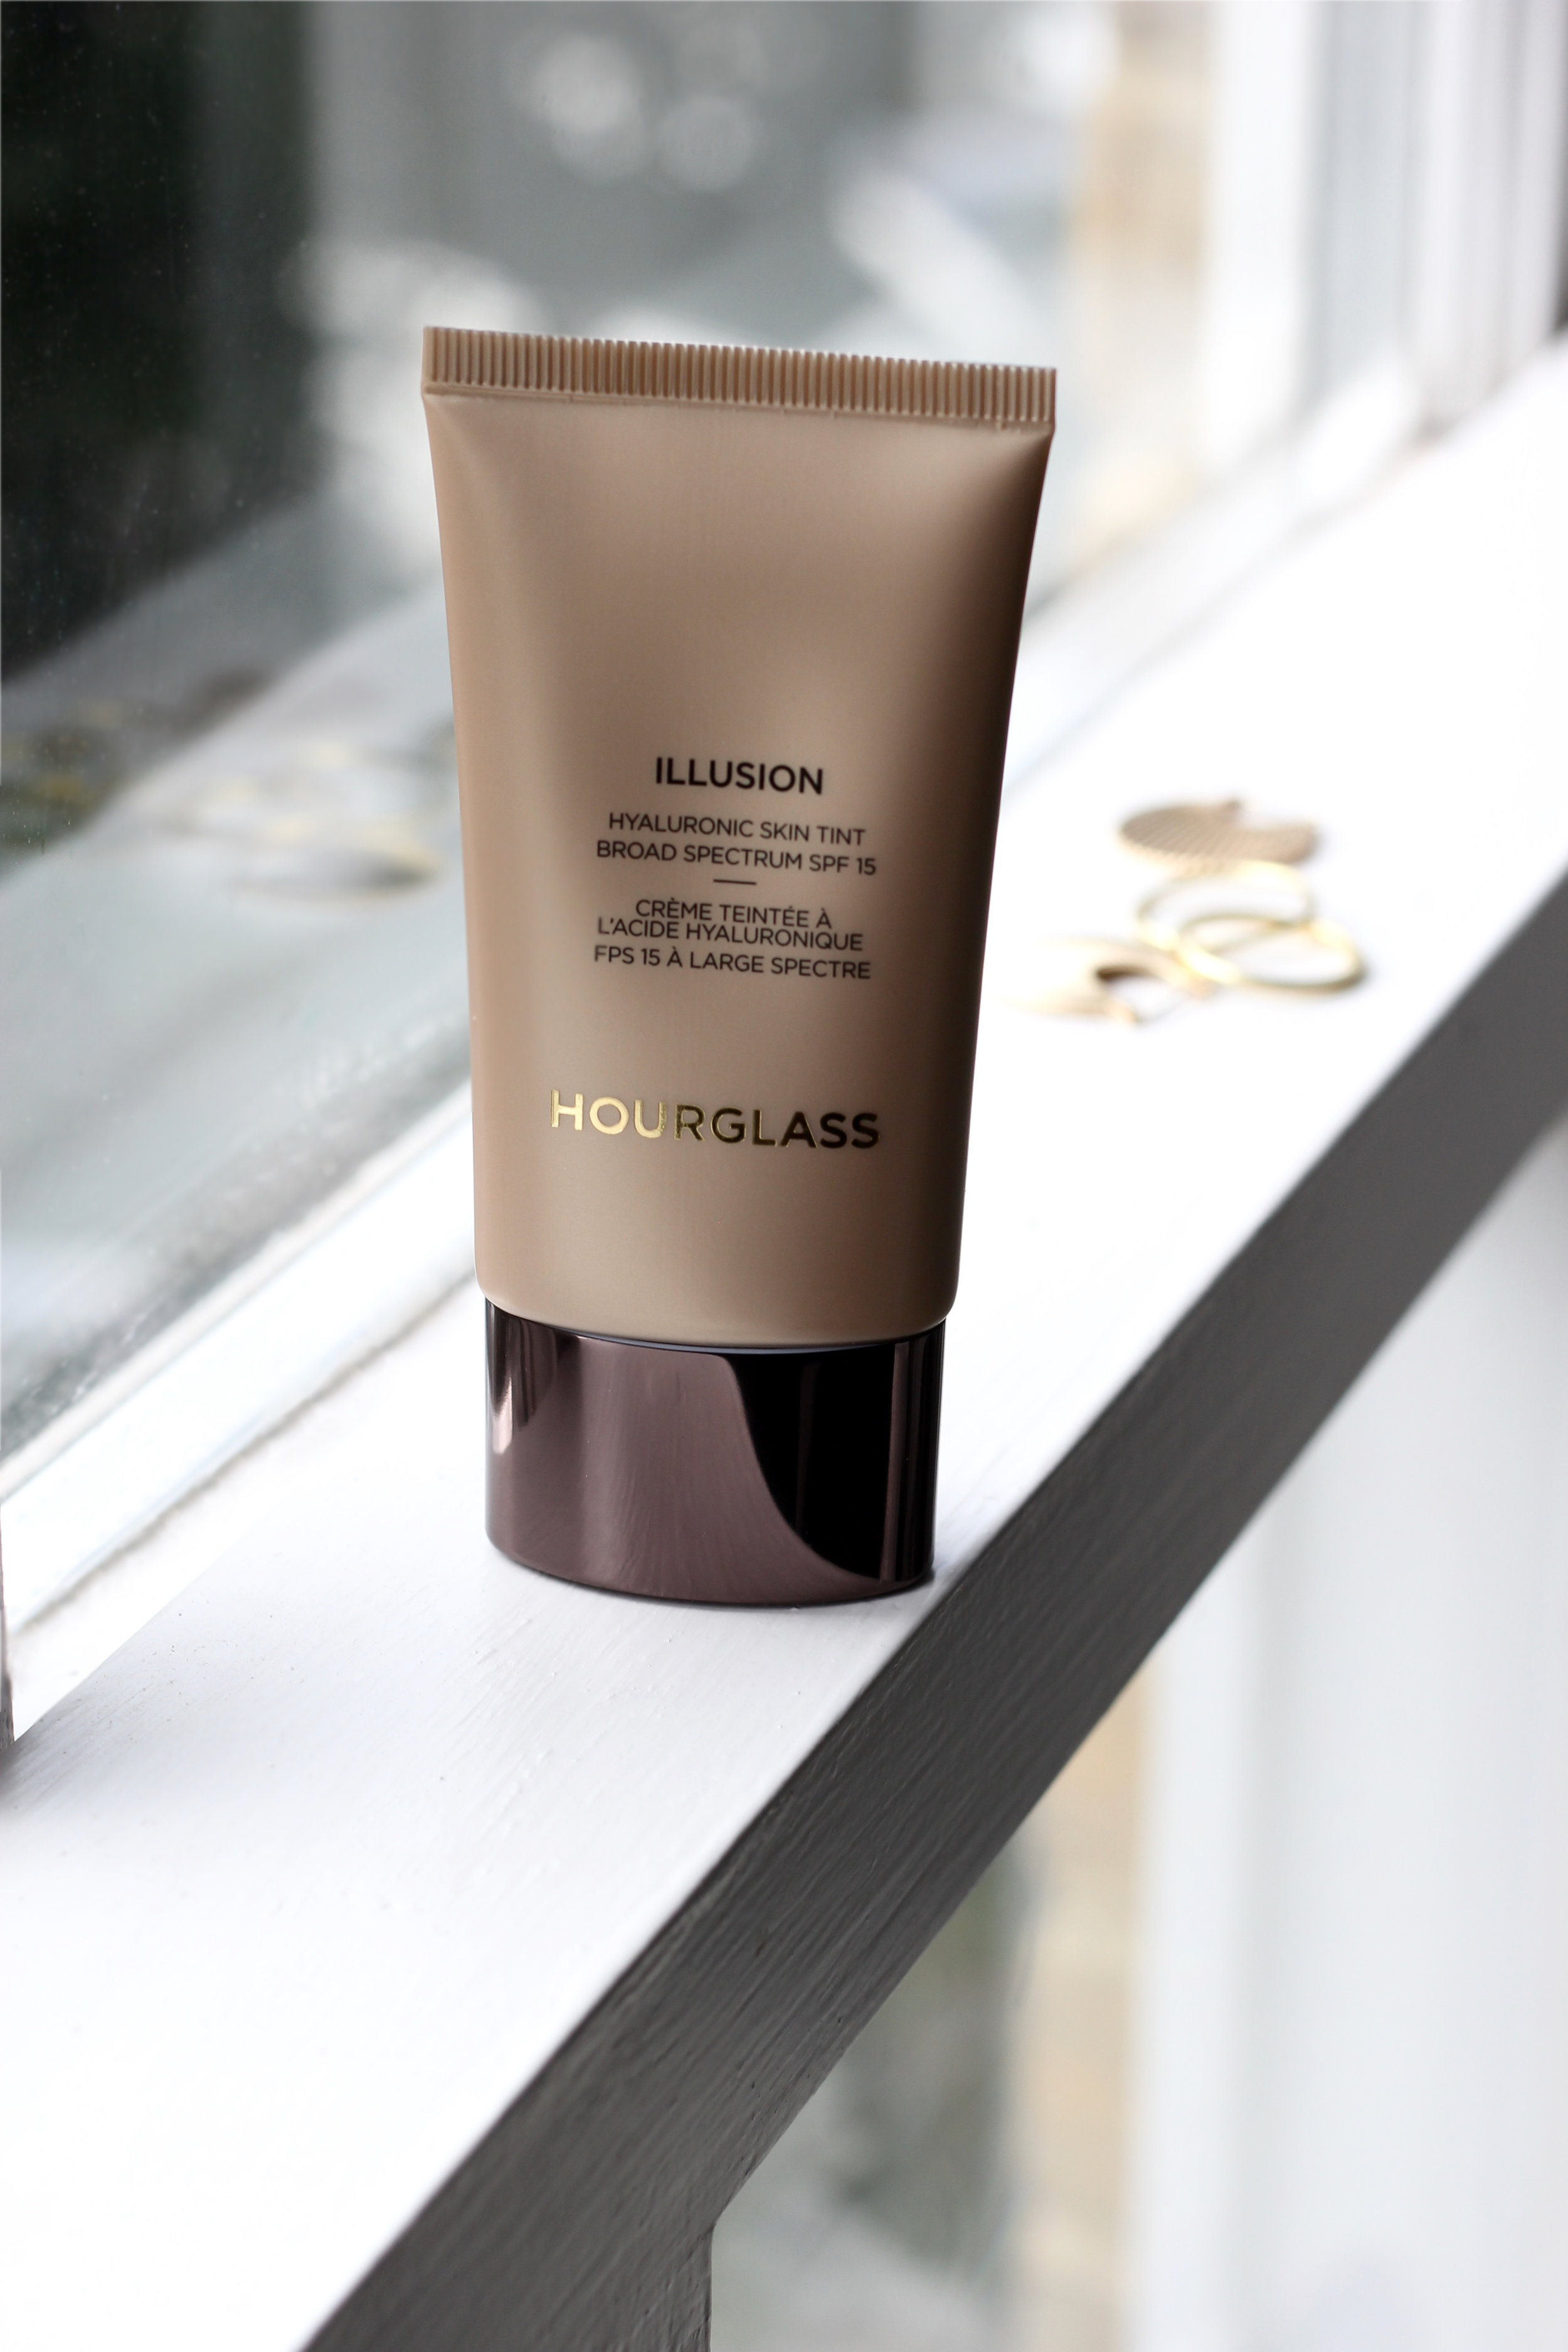 The Hourglass Illusion Hyaluronic Skin Tint - comes in 12 different shades and offers the skin a lot of hydration as well as medium UV protection with its 15 SPF. This product is both skincare and makeup, as it gives you moderate coverage as well as being a moisturiser. We found that this tinted day cream gives medium coverage, yet natural coverage. It definitely helps even out the skin tone and gives more coverage than what you'd expect from a tinted moisturiser, still it doesn't leave the skin looking caked up. We are all for makeup which leaves the skin looking natural and real. This product does that.Shop this product here.